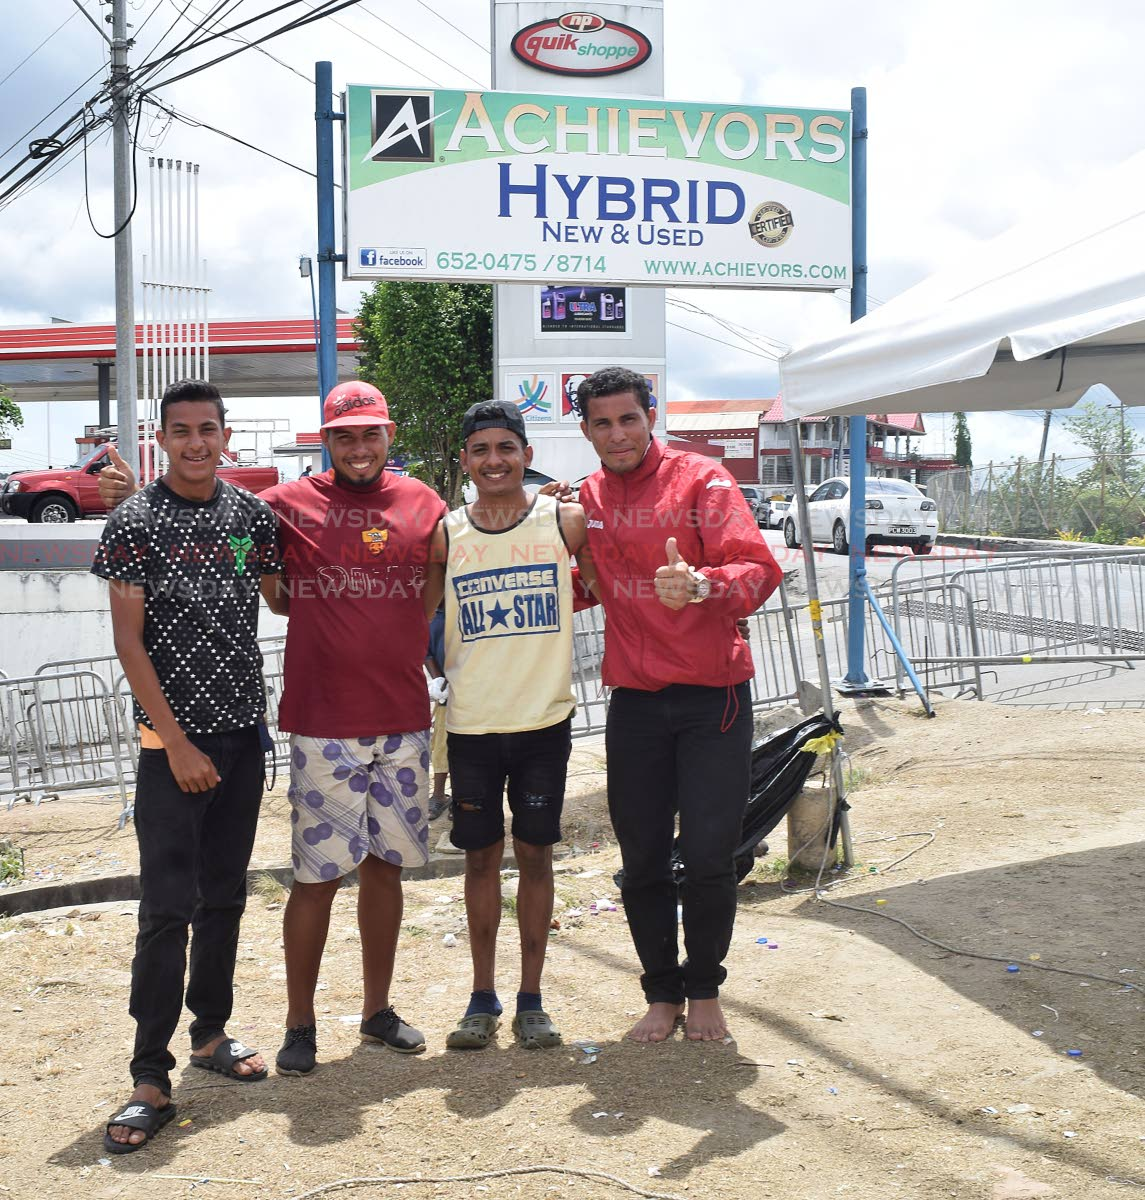 Venezuelans Diego Salazar, Valentin Osuna, Albert Astudillo and Eduard Pulvett are all smiles as they await their transport at Achievors Hall, Duncan Village ,San Fernando after completing the registration process early yesterday morning. PHOTO BY VIDYA THURAB